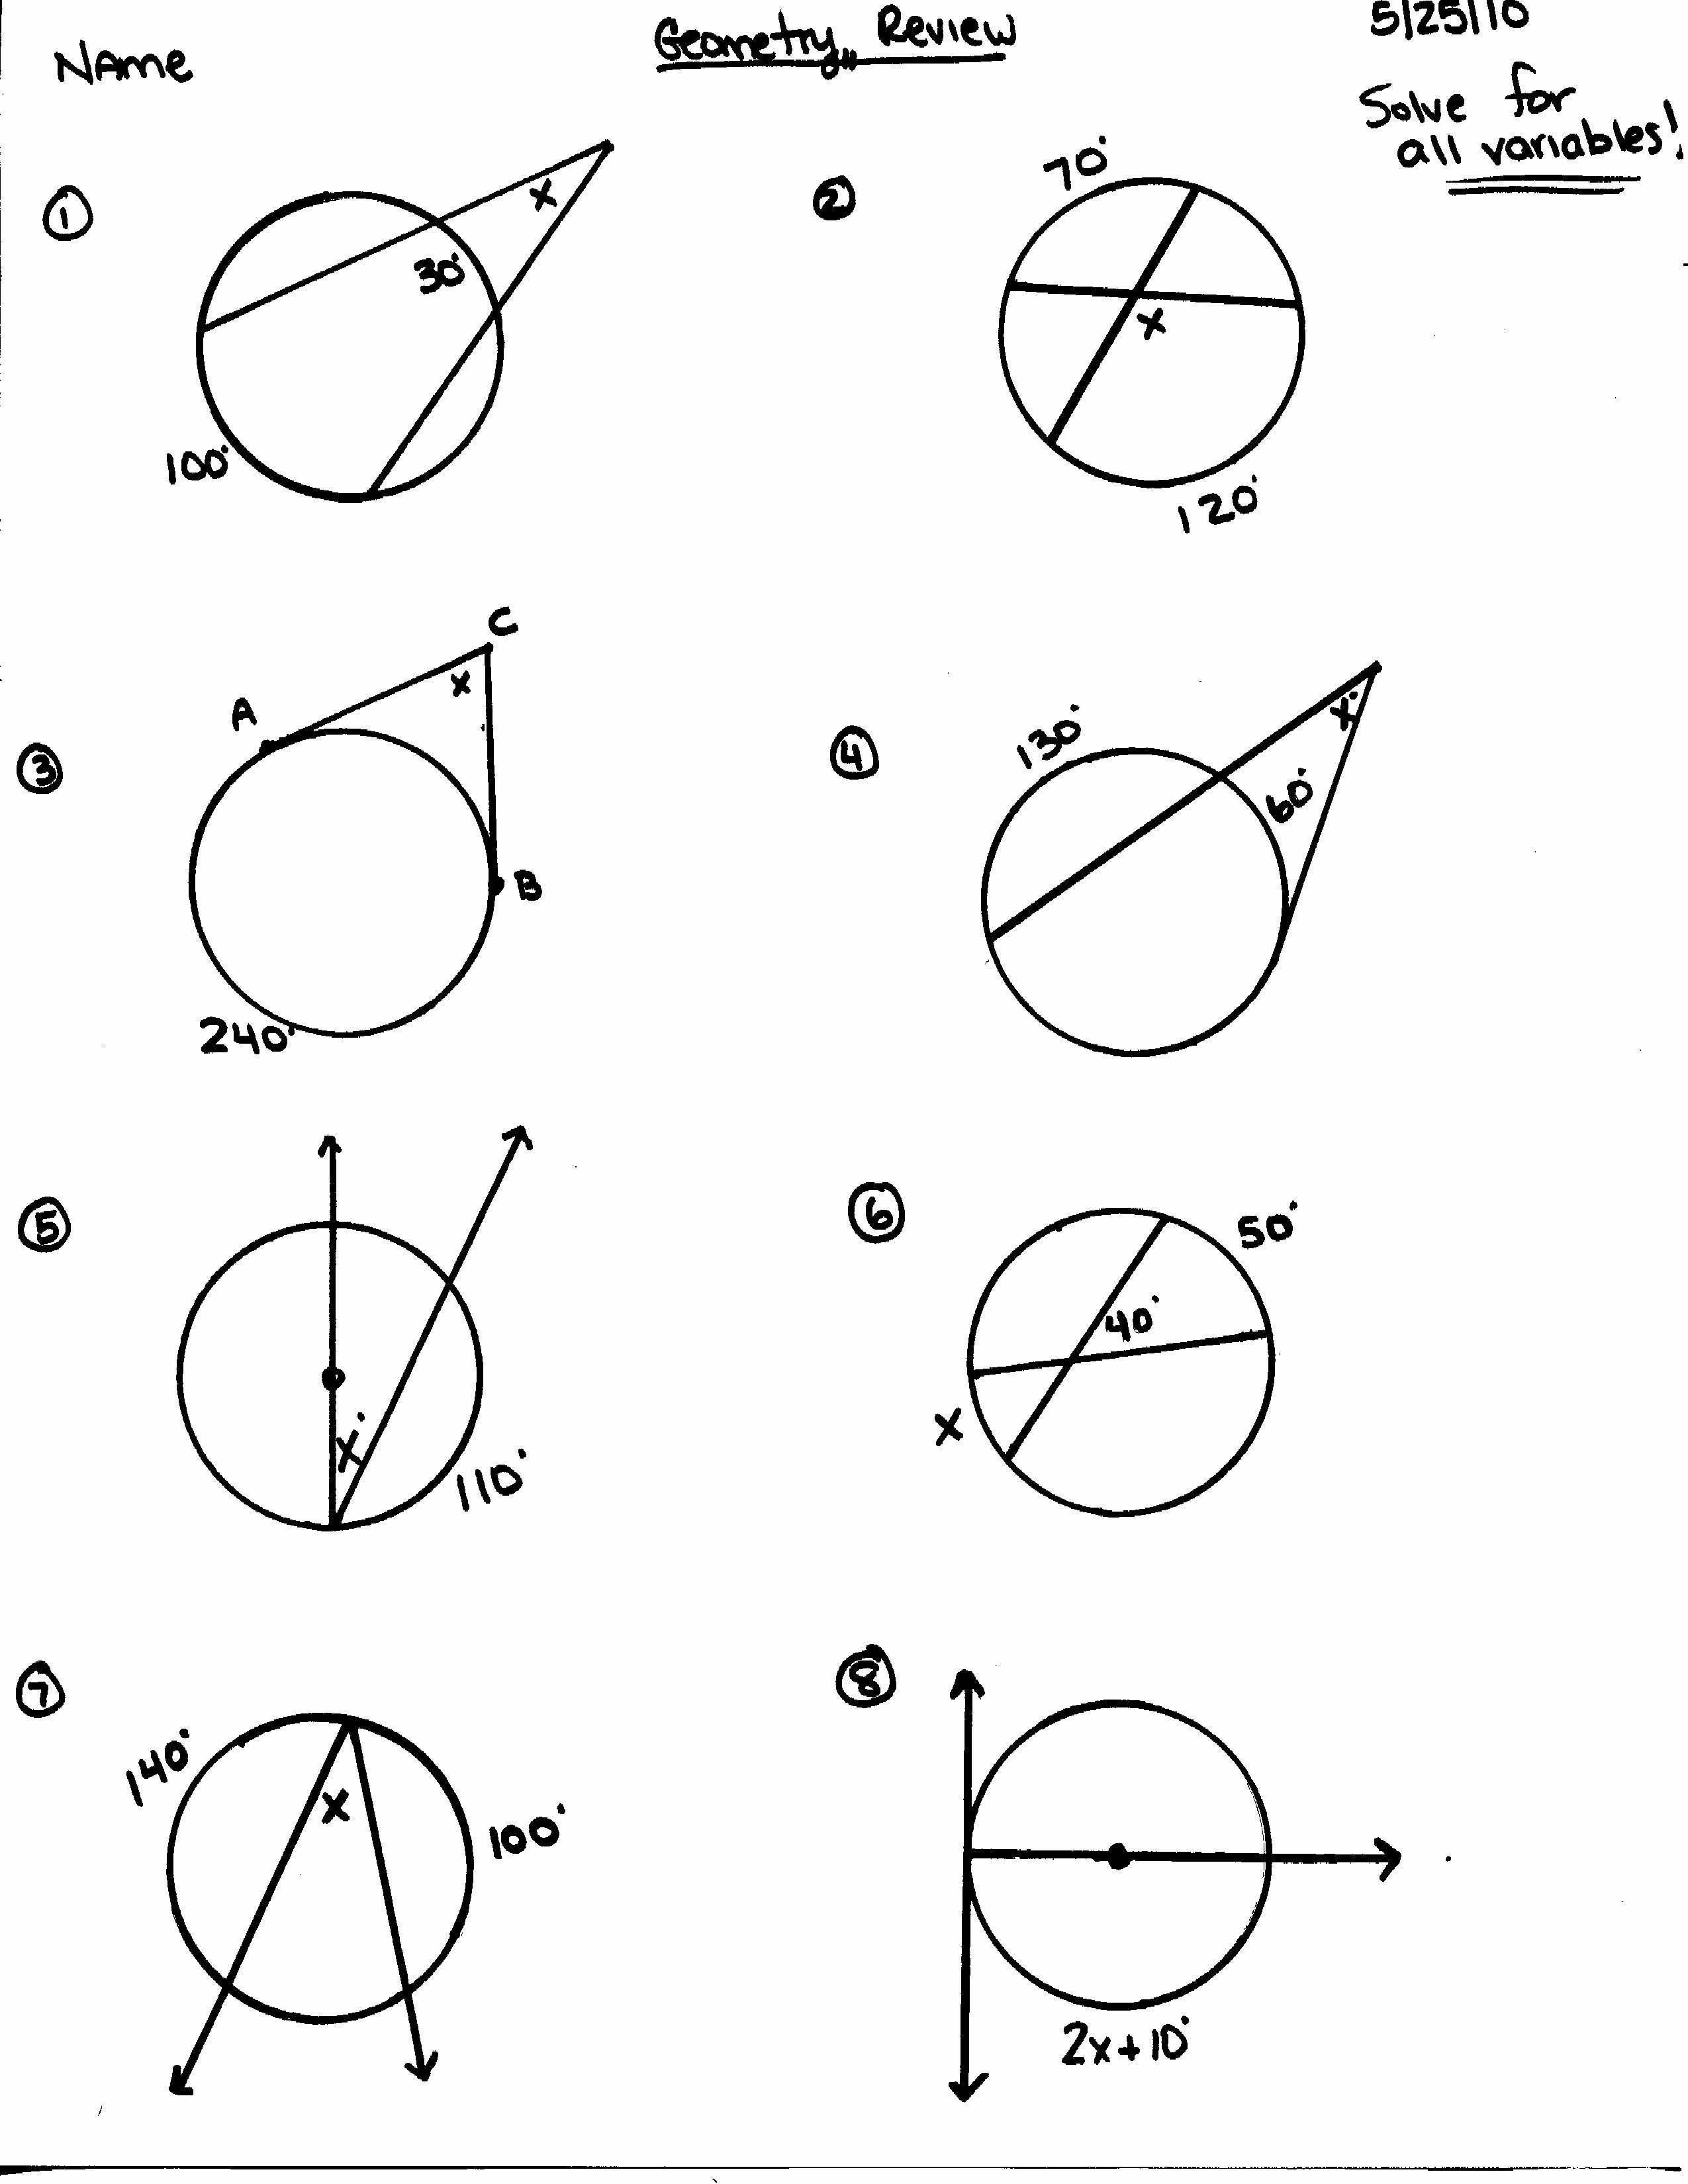 small resolution of Angles In A Circle Worksheet Lovely Circle theorems Match Up by Debbs  Bridgman – Chessmuseum Template Libra…   Geometry proofs